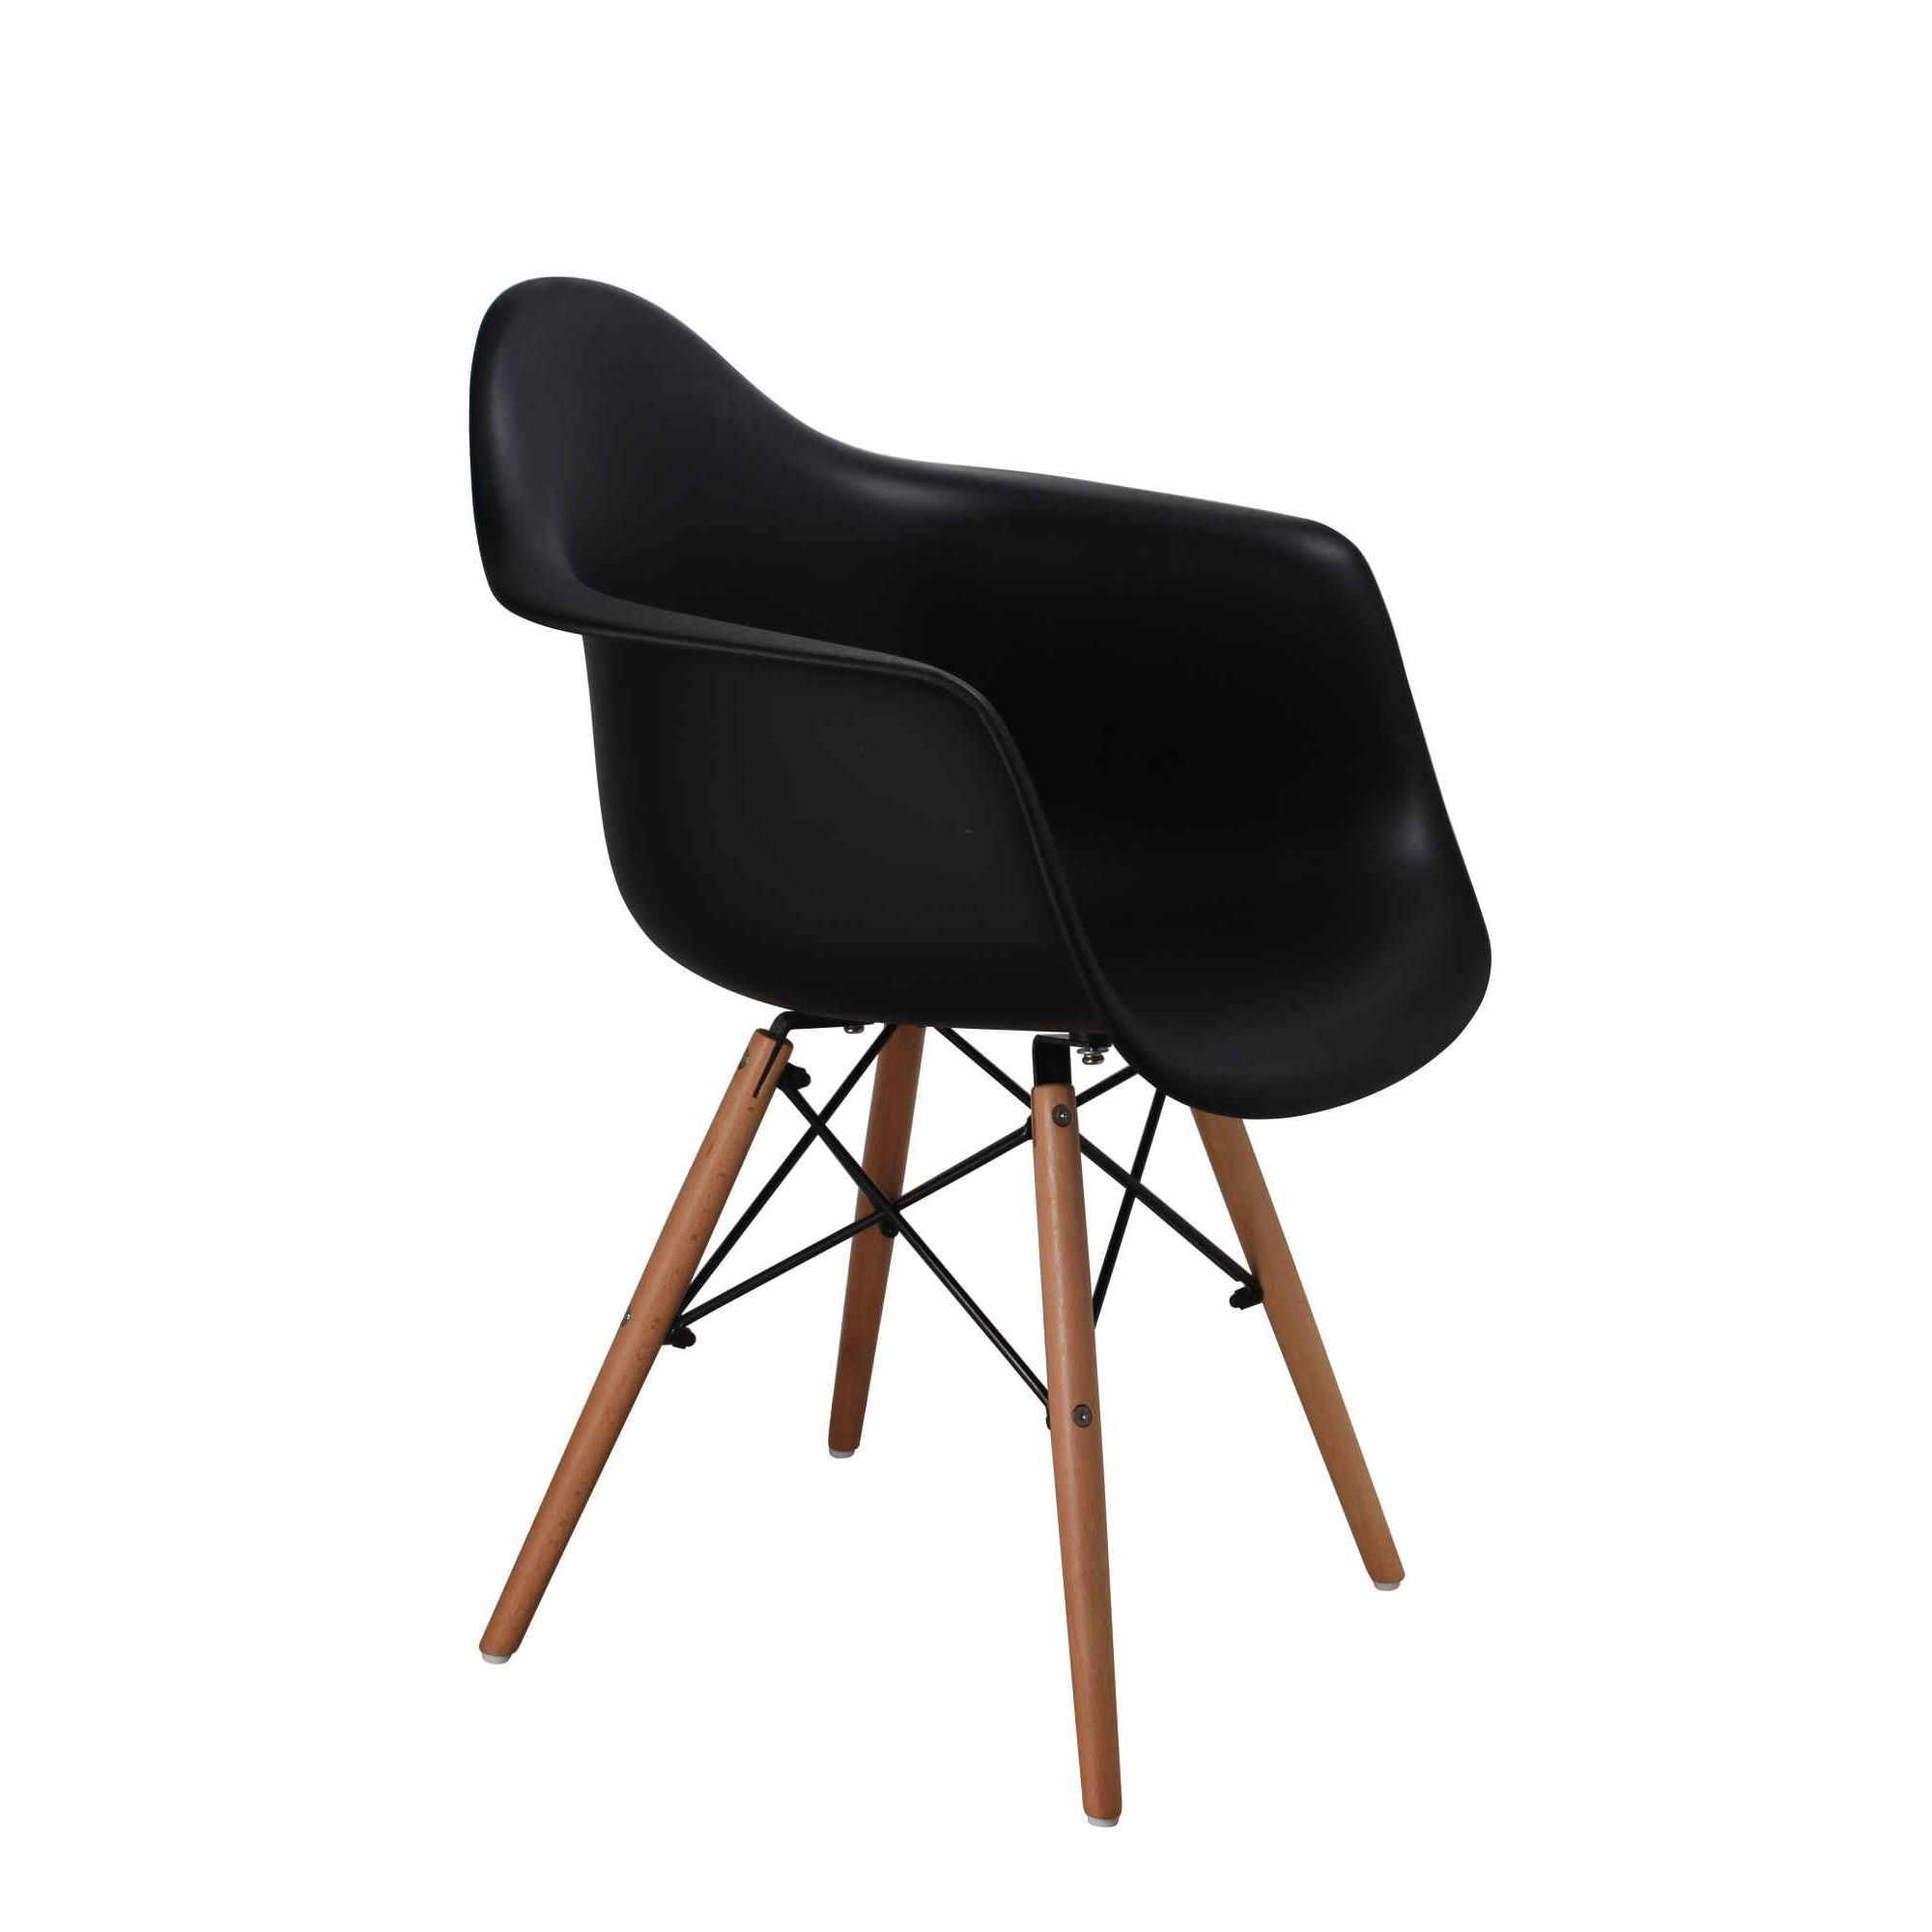 deco in paris 8 lot de 4 chaises scandinaves noires avec accoudoirs nina ninaaccourdoirs x4 noir. Black Bedroom Furniture Sets. Home Design Ideas